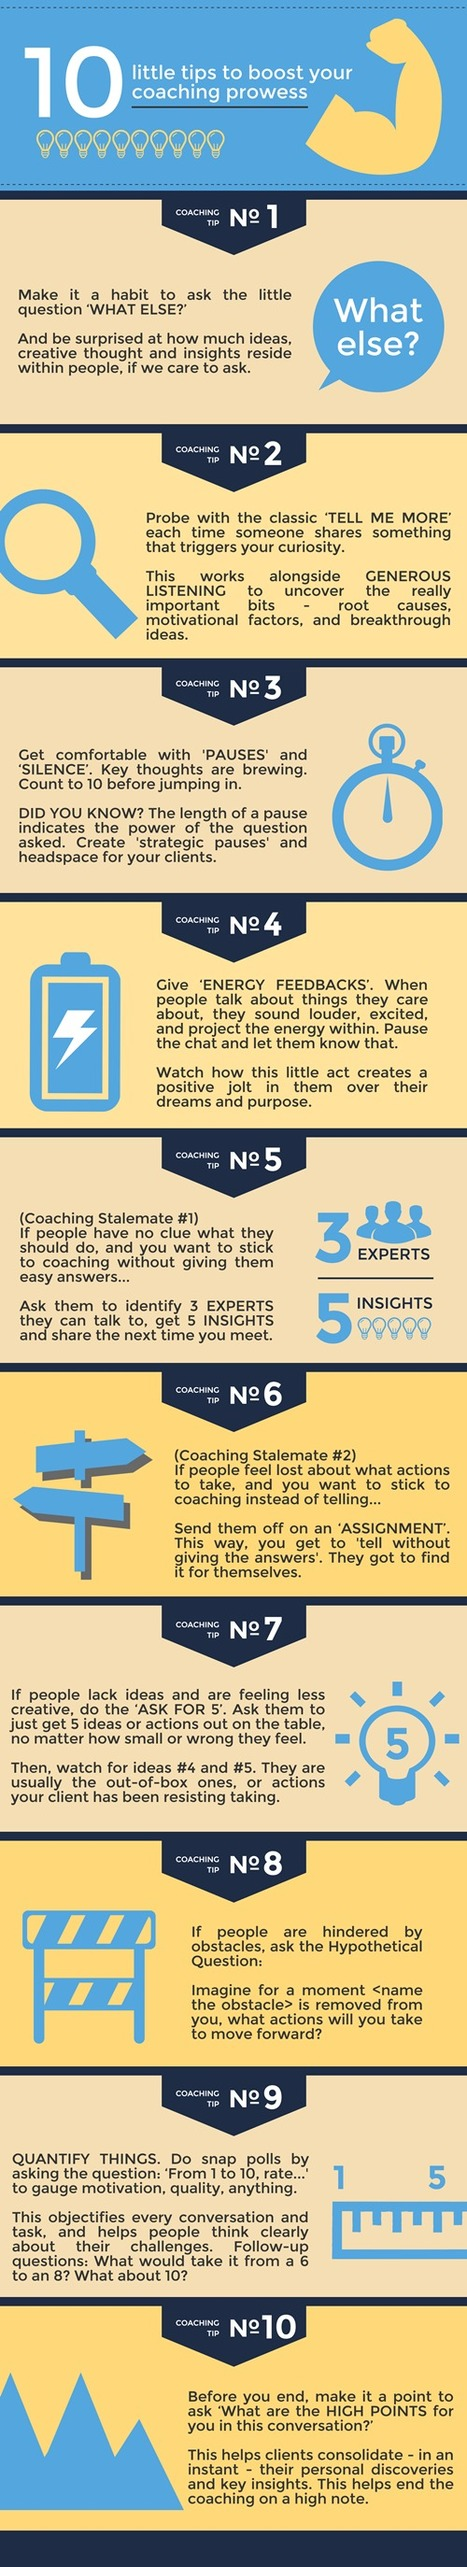 Ten Little Tips to Boost Your Coaching Prowess ‹ http://coachfederation.org/blog | Graphic Coaching | Scoop.it